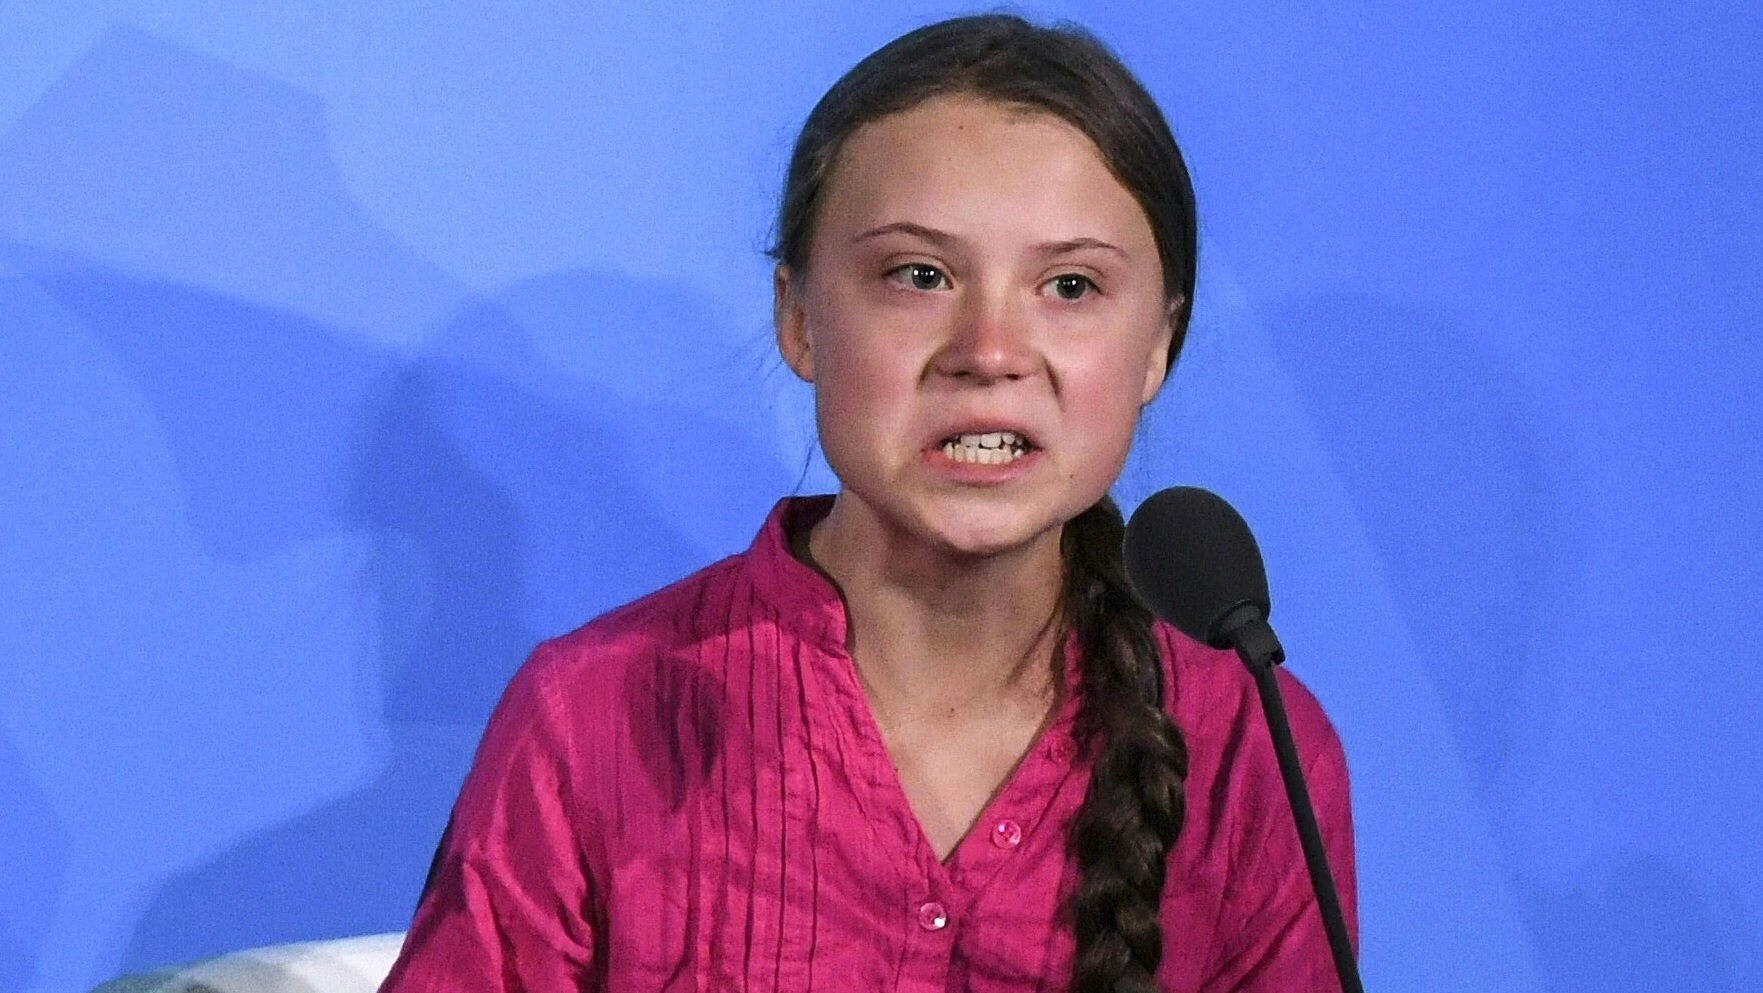 More climate lies: Greta Thunberg's yacht uses more fuel than a commercial airplane to travel similar distances